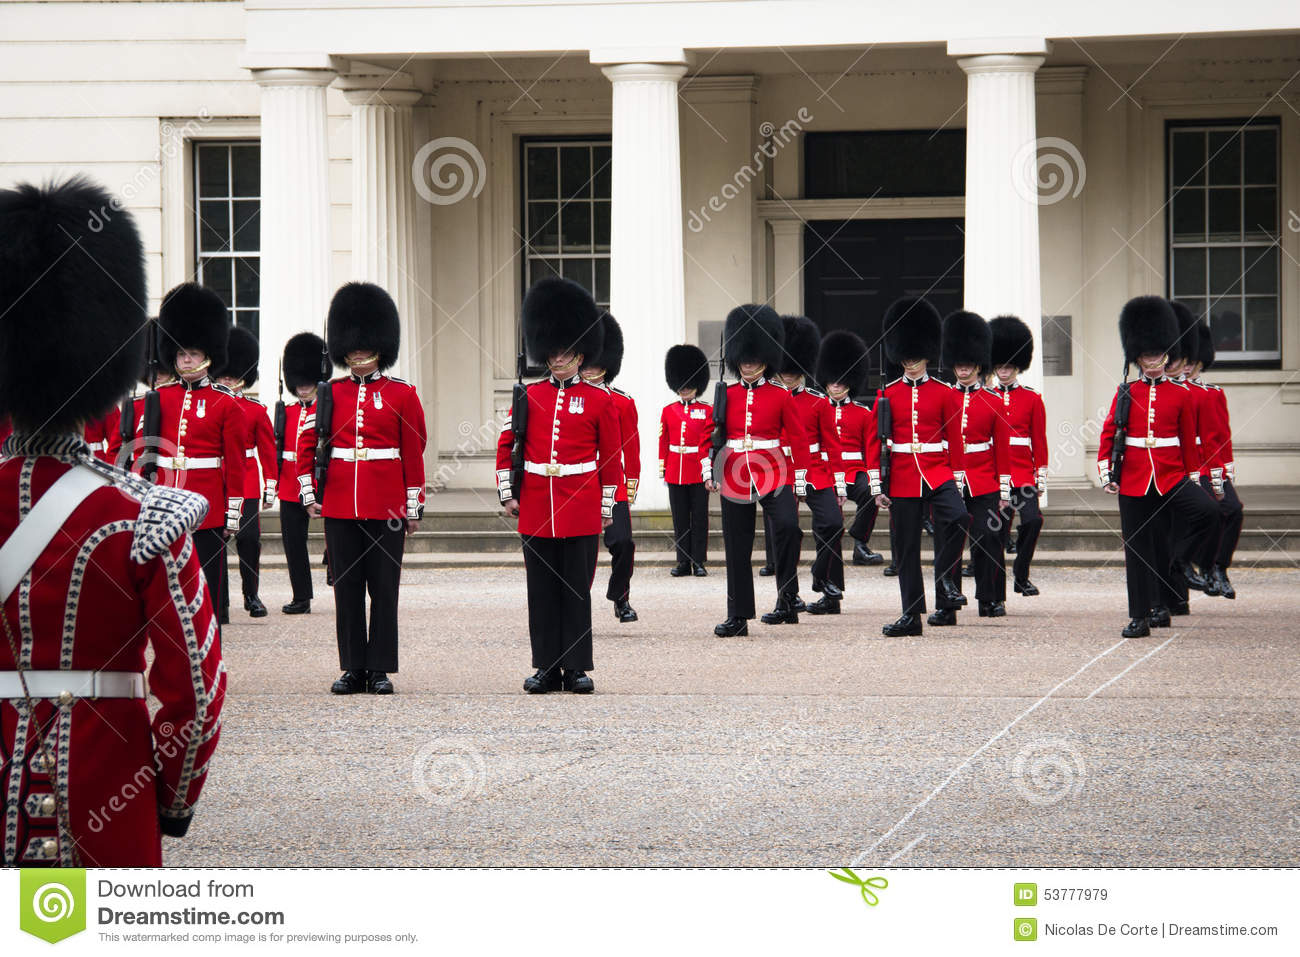 Changing Of The Guard Ceremony At Buckingham Palace, London, UK.